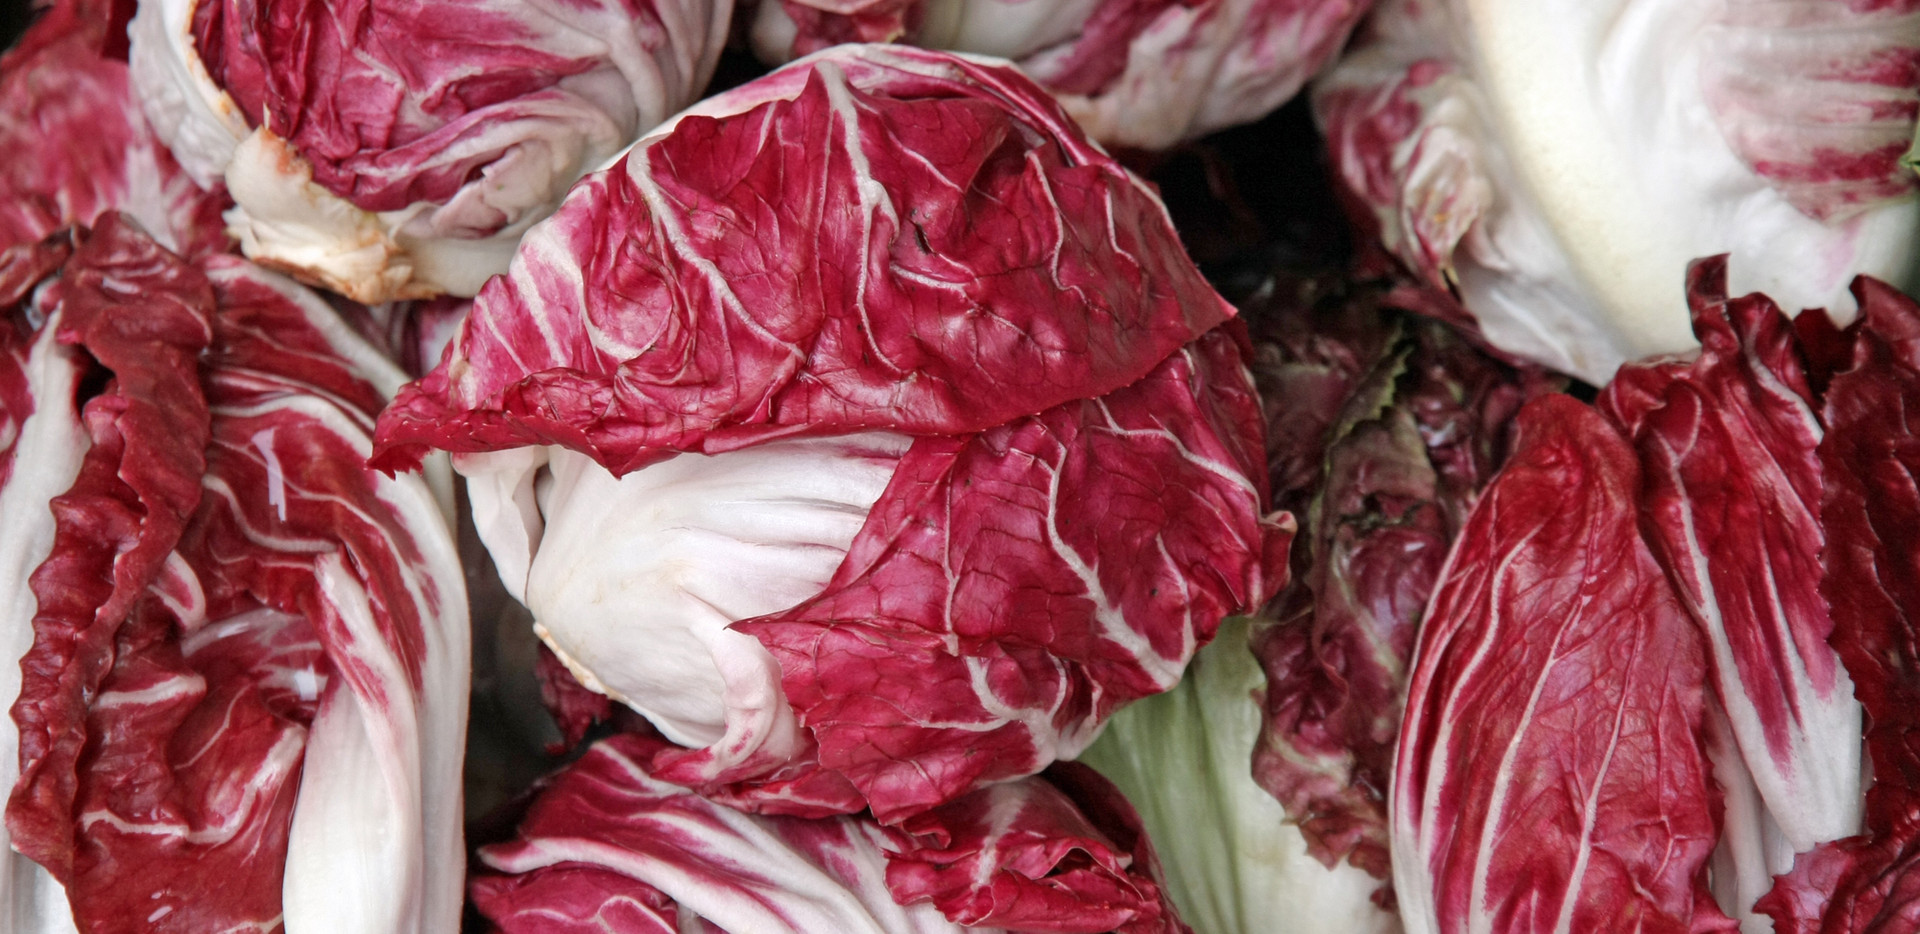 crunchy red radicchio heads for sale at